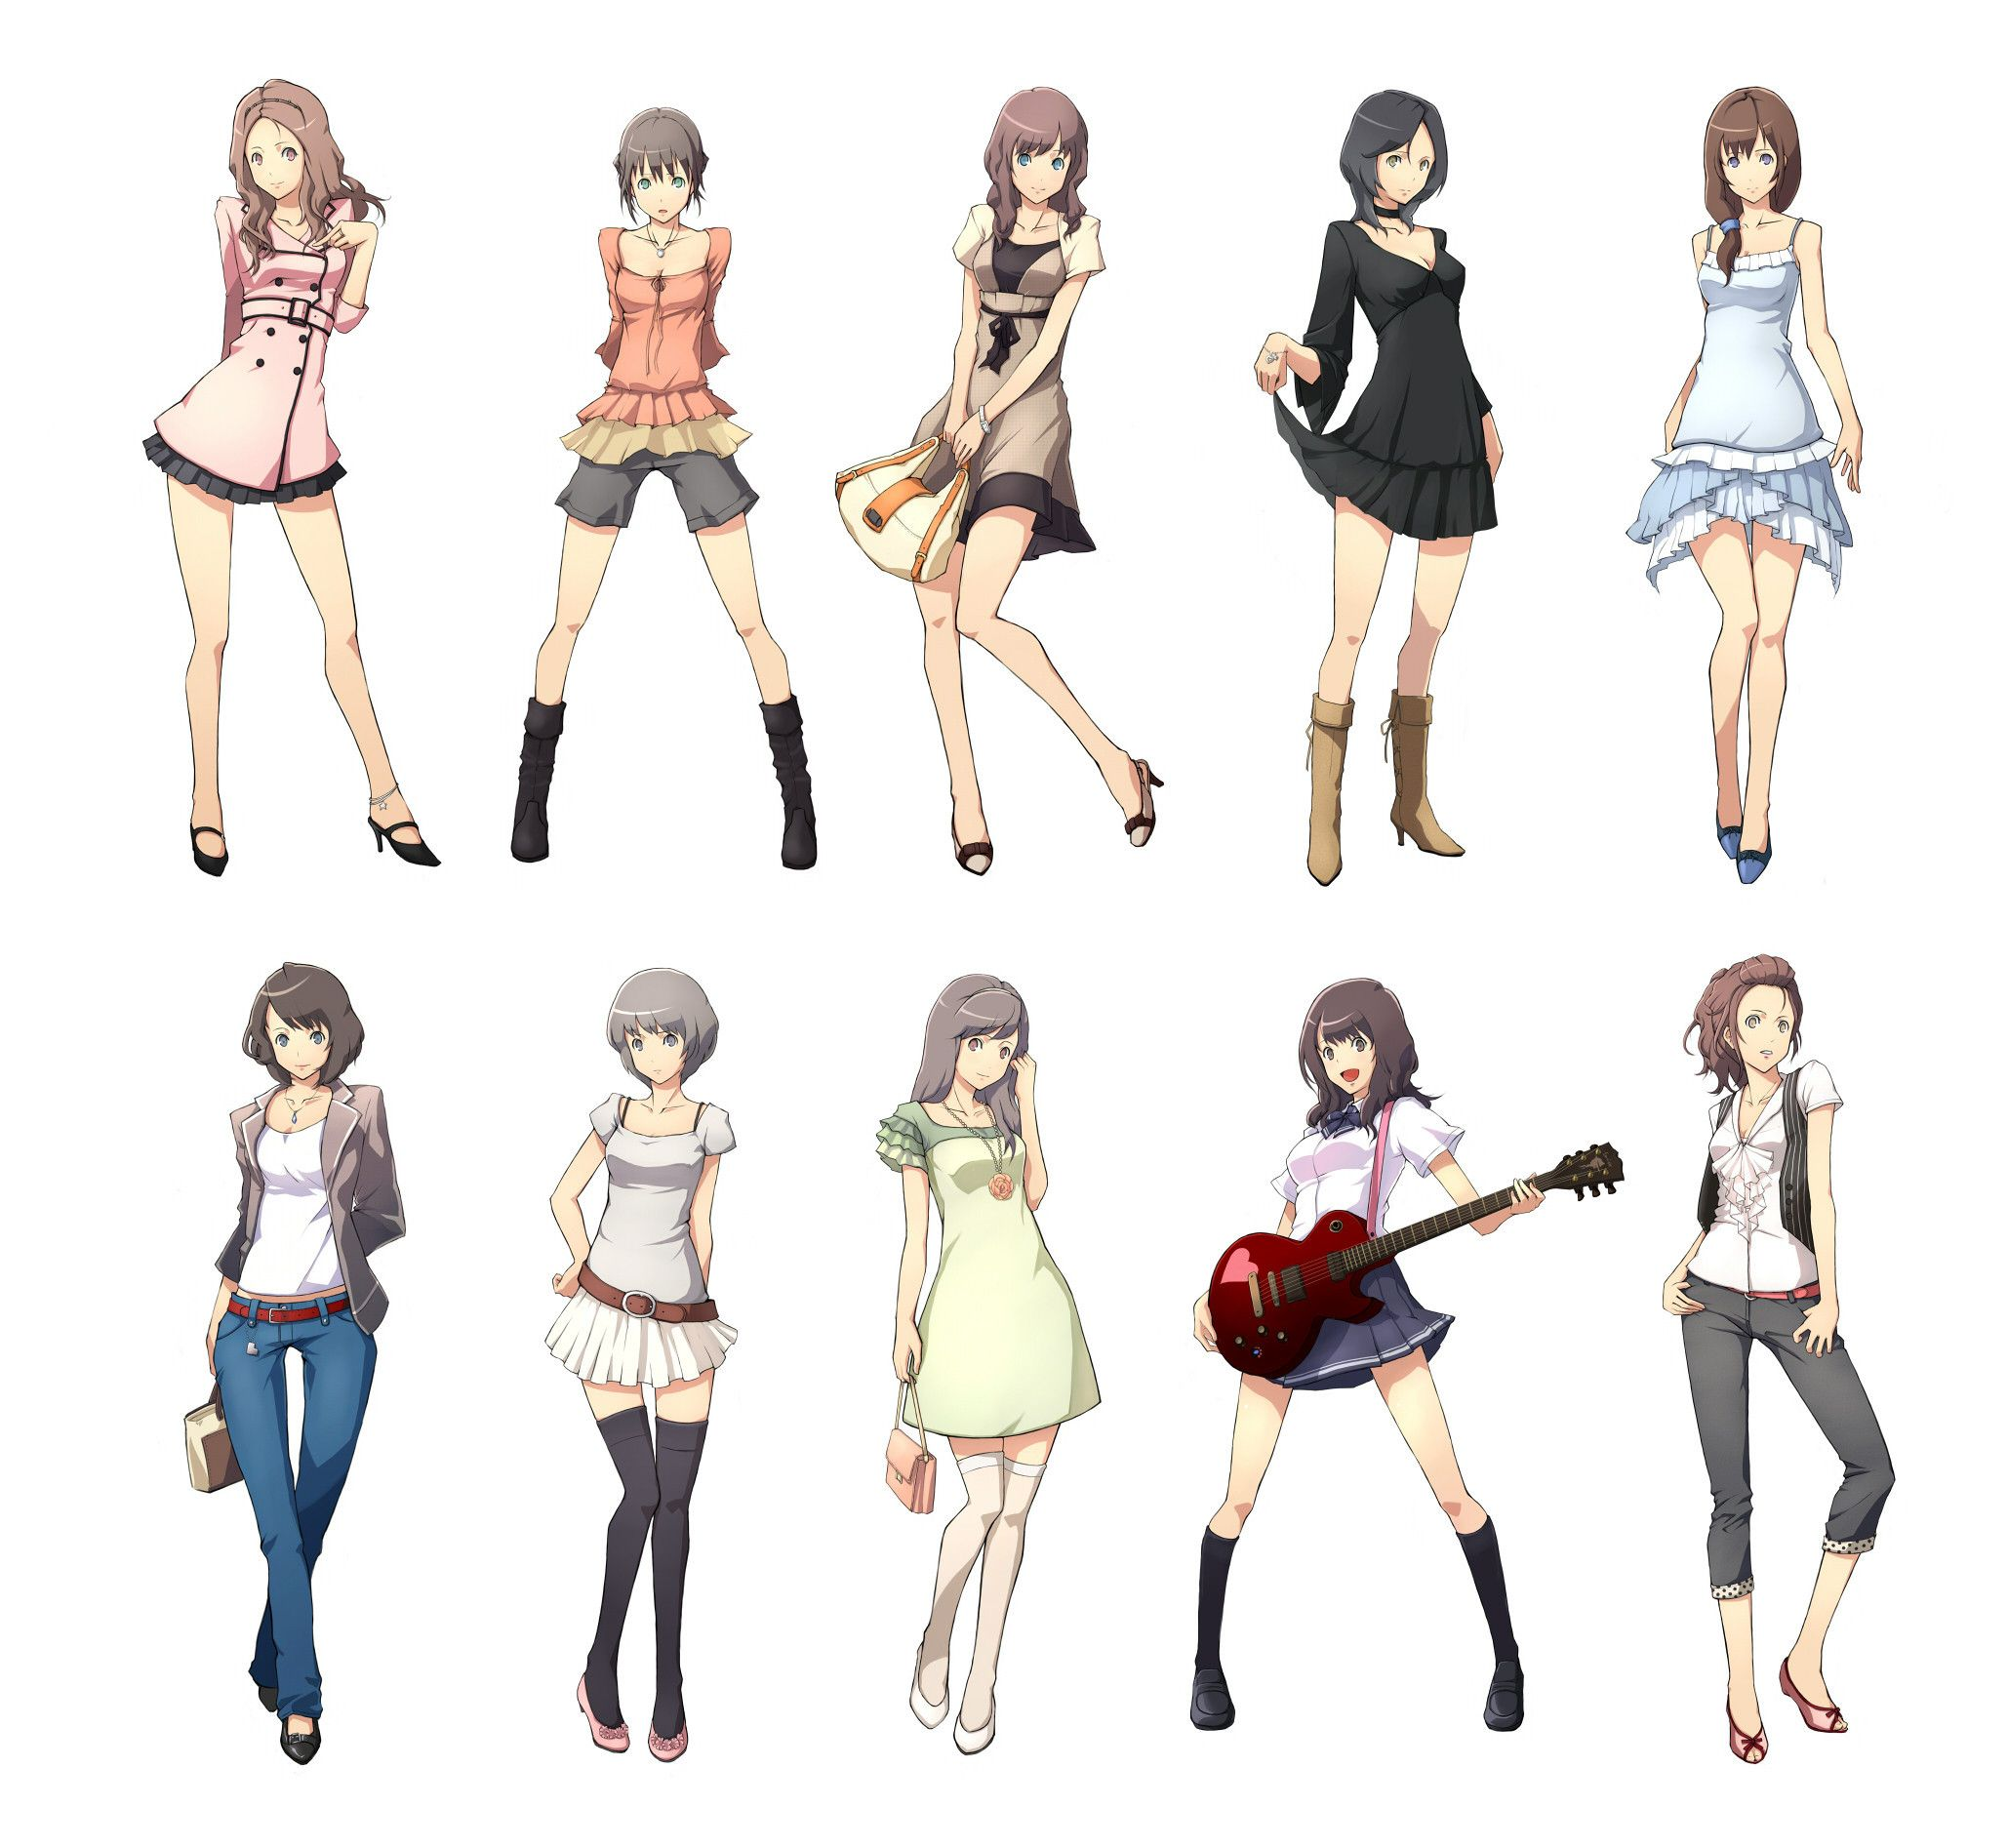 Ooh Different Poses And Styles Of Anime I Think I Might